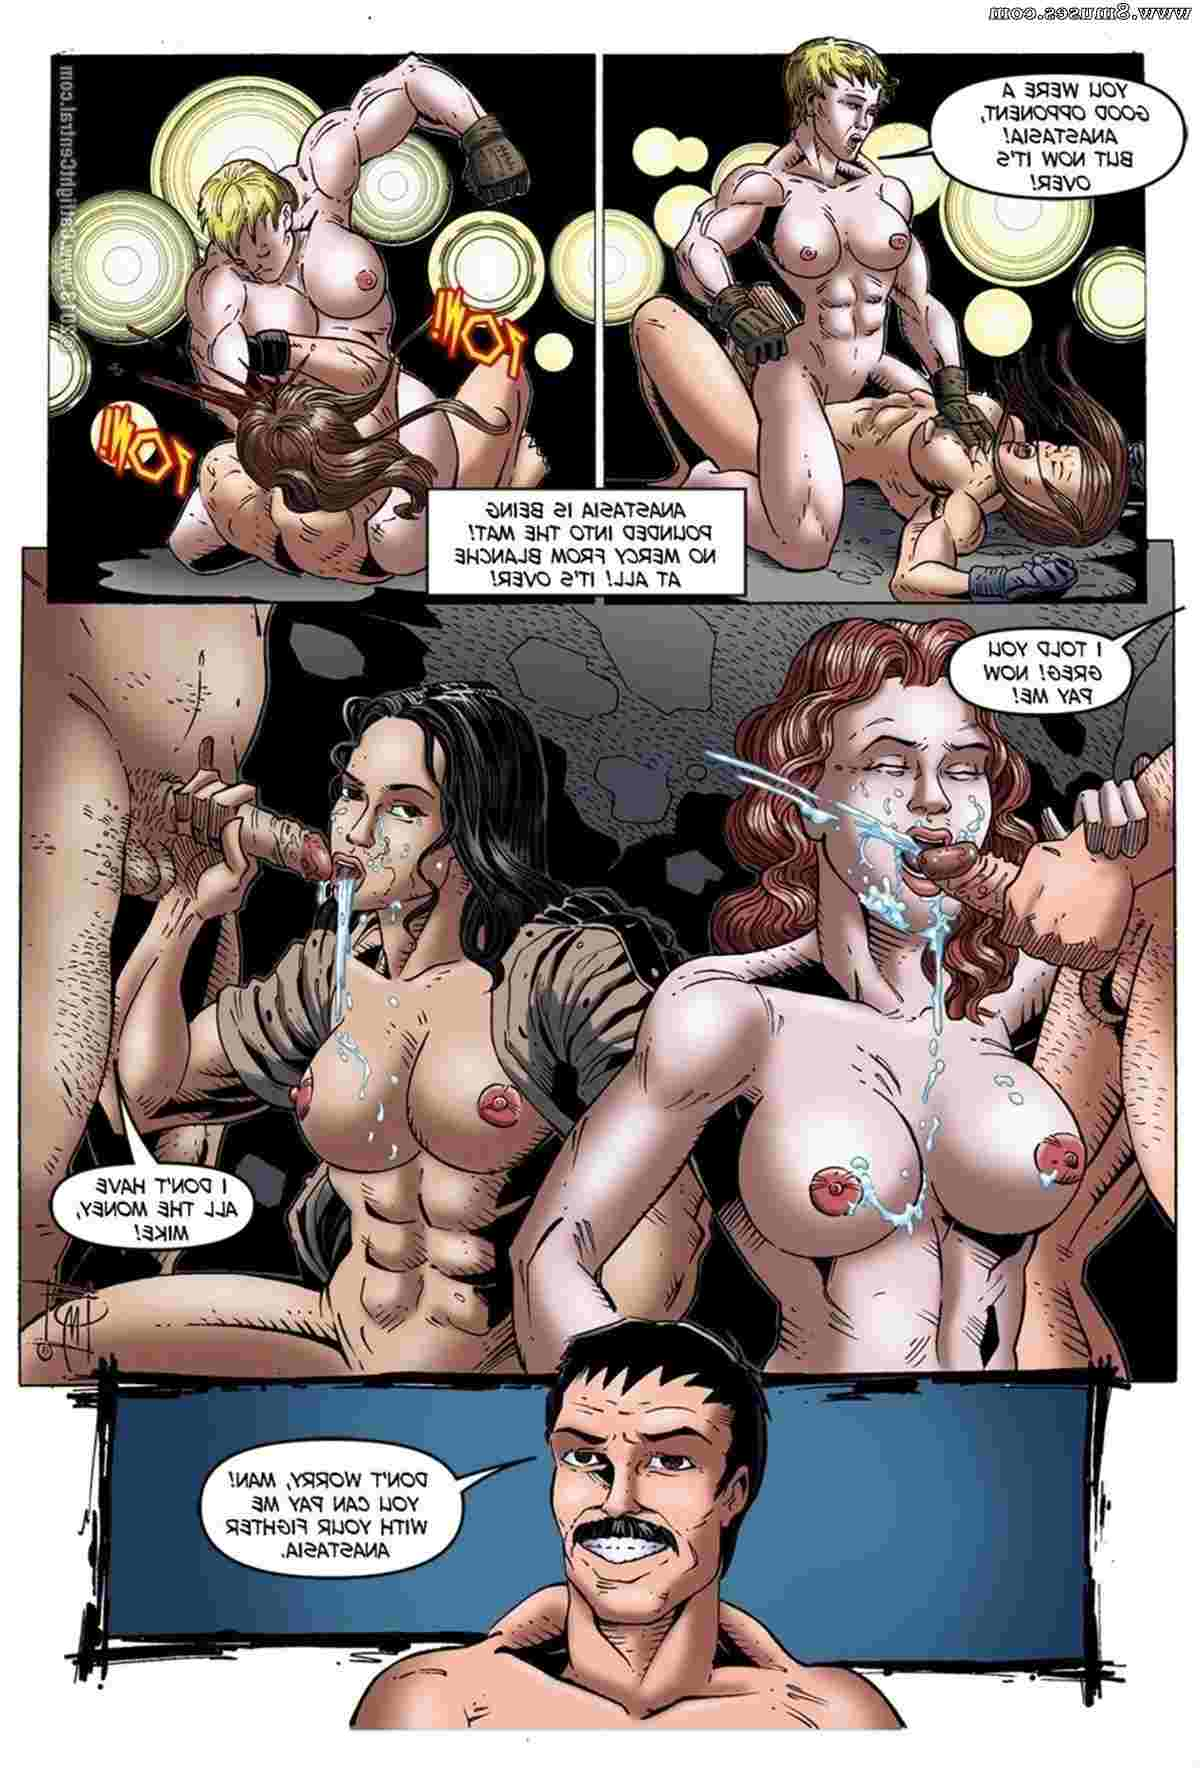 Central-Comics/Catfight-Central/Prison-Bitches Prison_Bitches__8muses_-_Sex_and_Porn_Comics_35.jpg